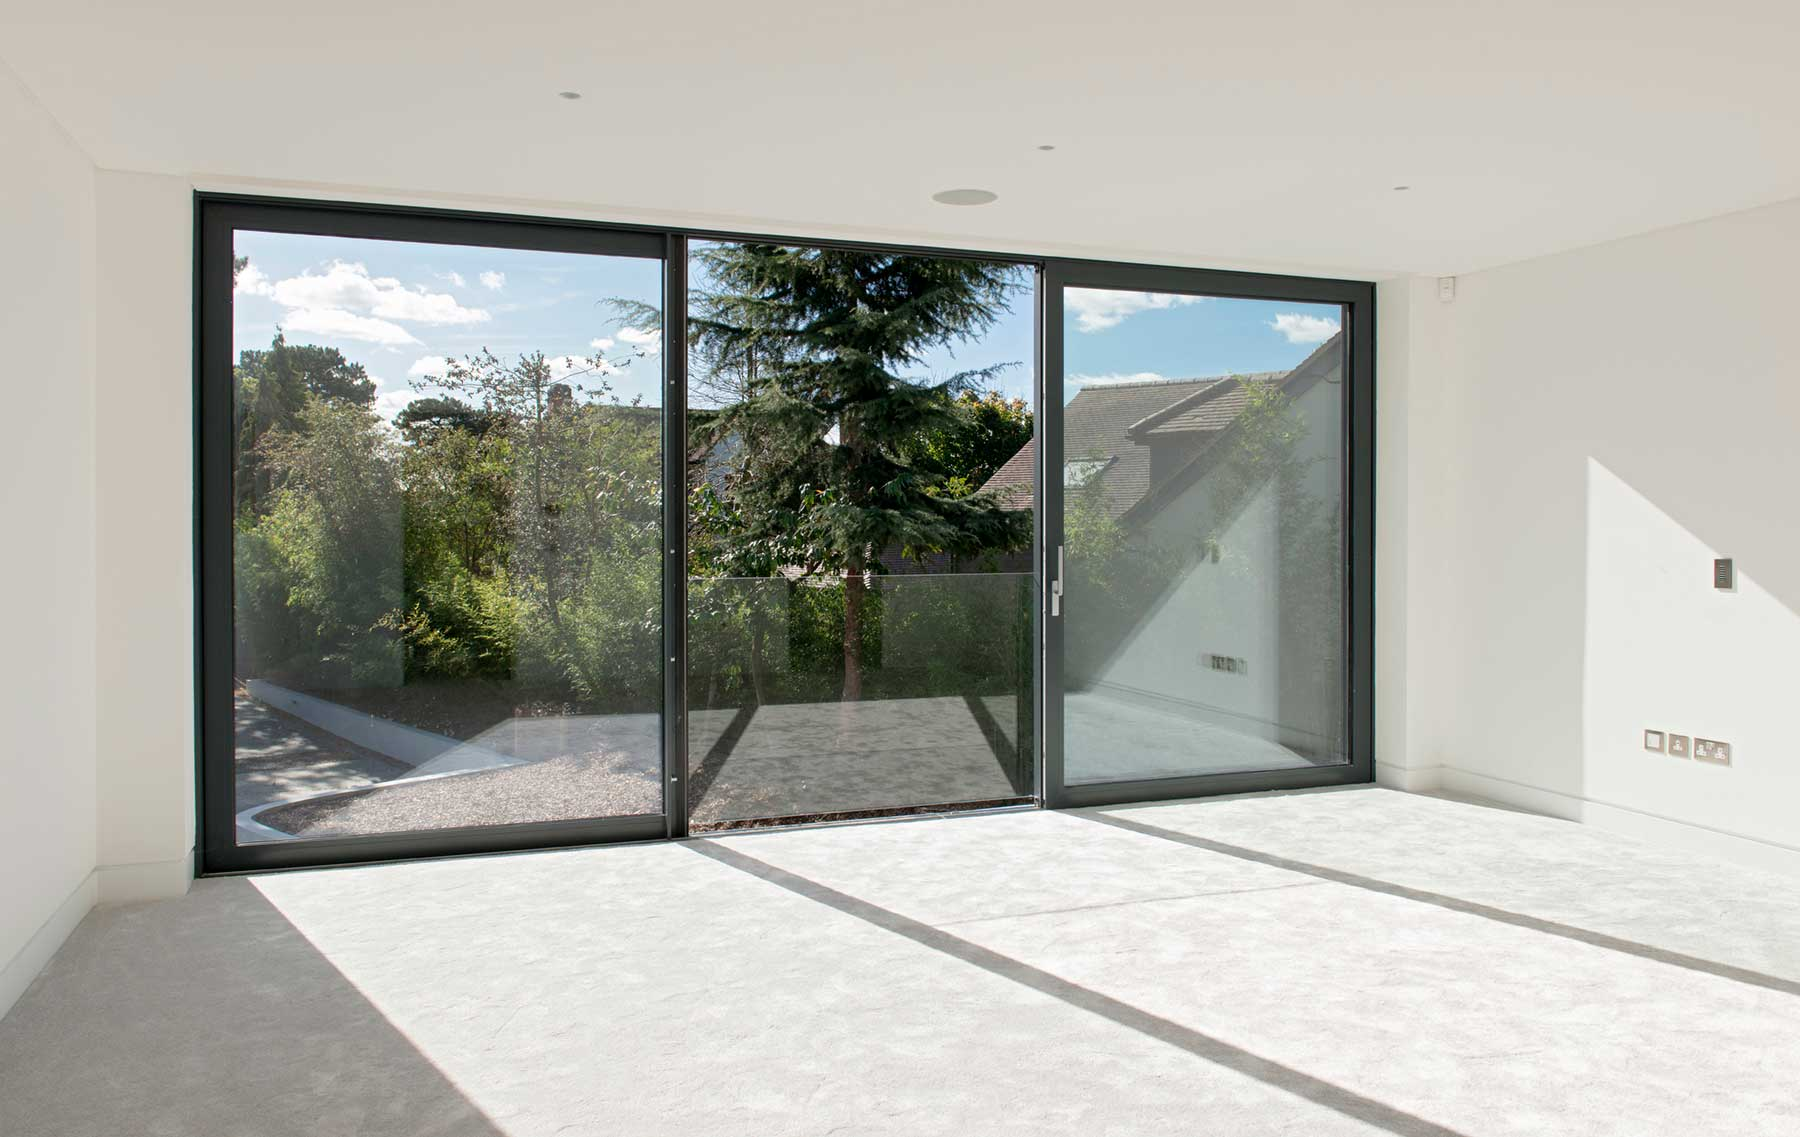 Slimline ODC300 sliding systems with glass balustrade on stunning new build